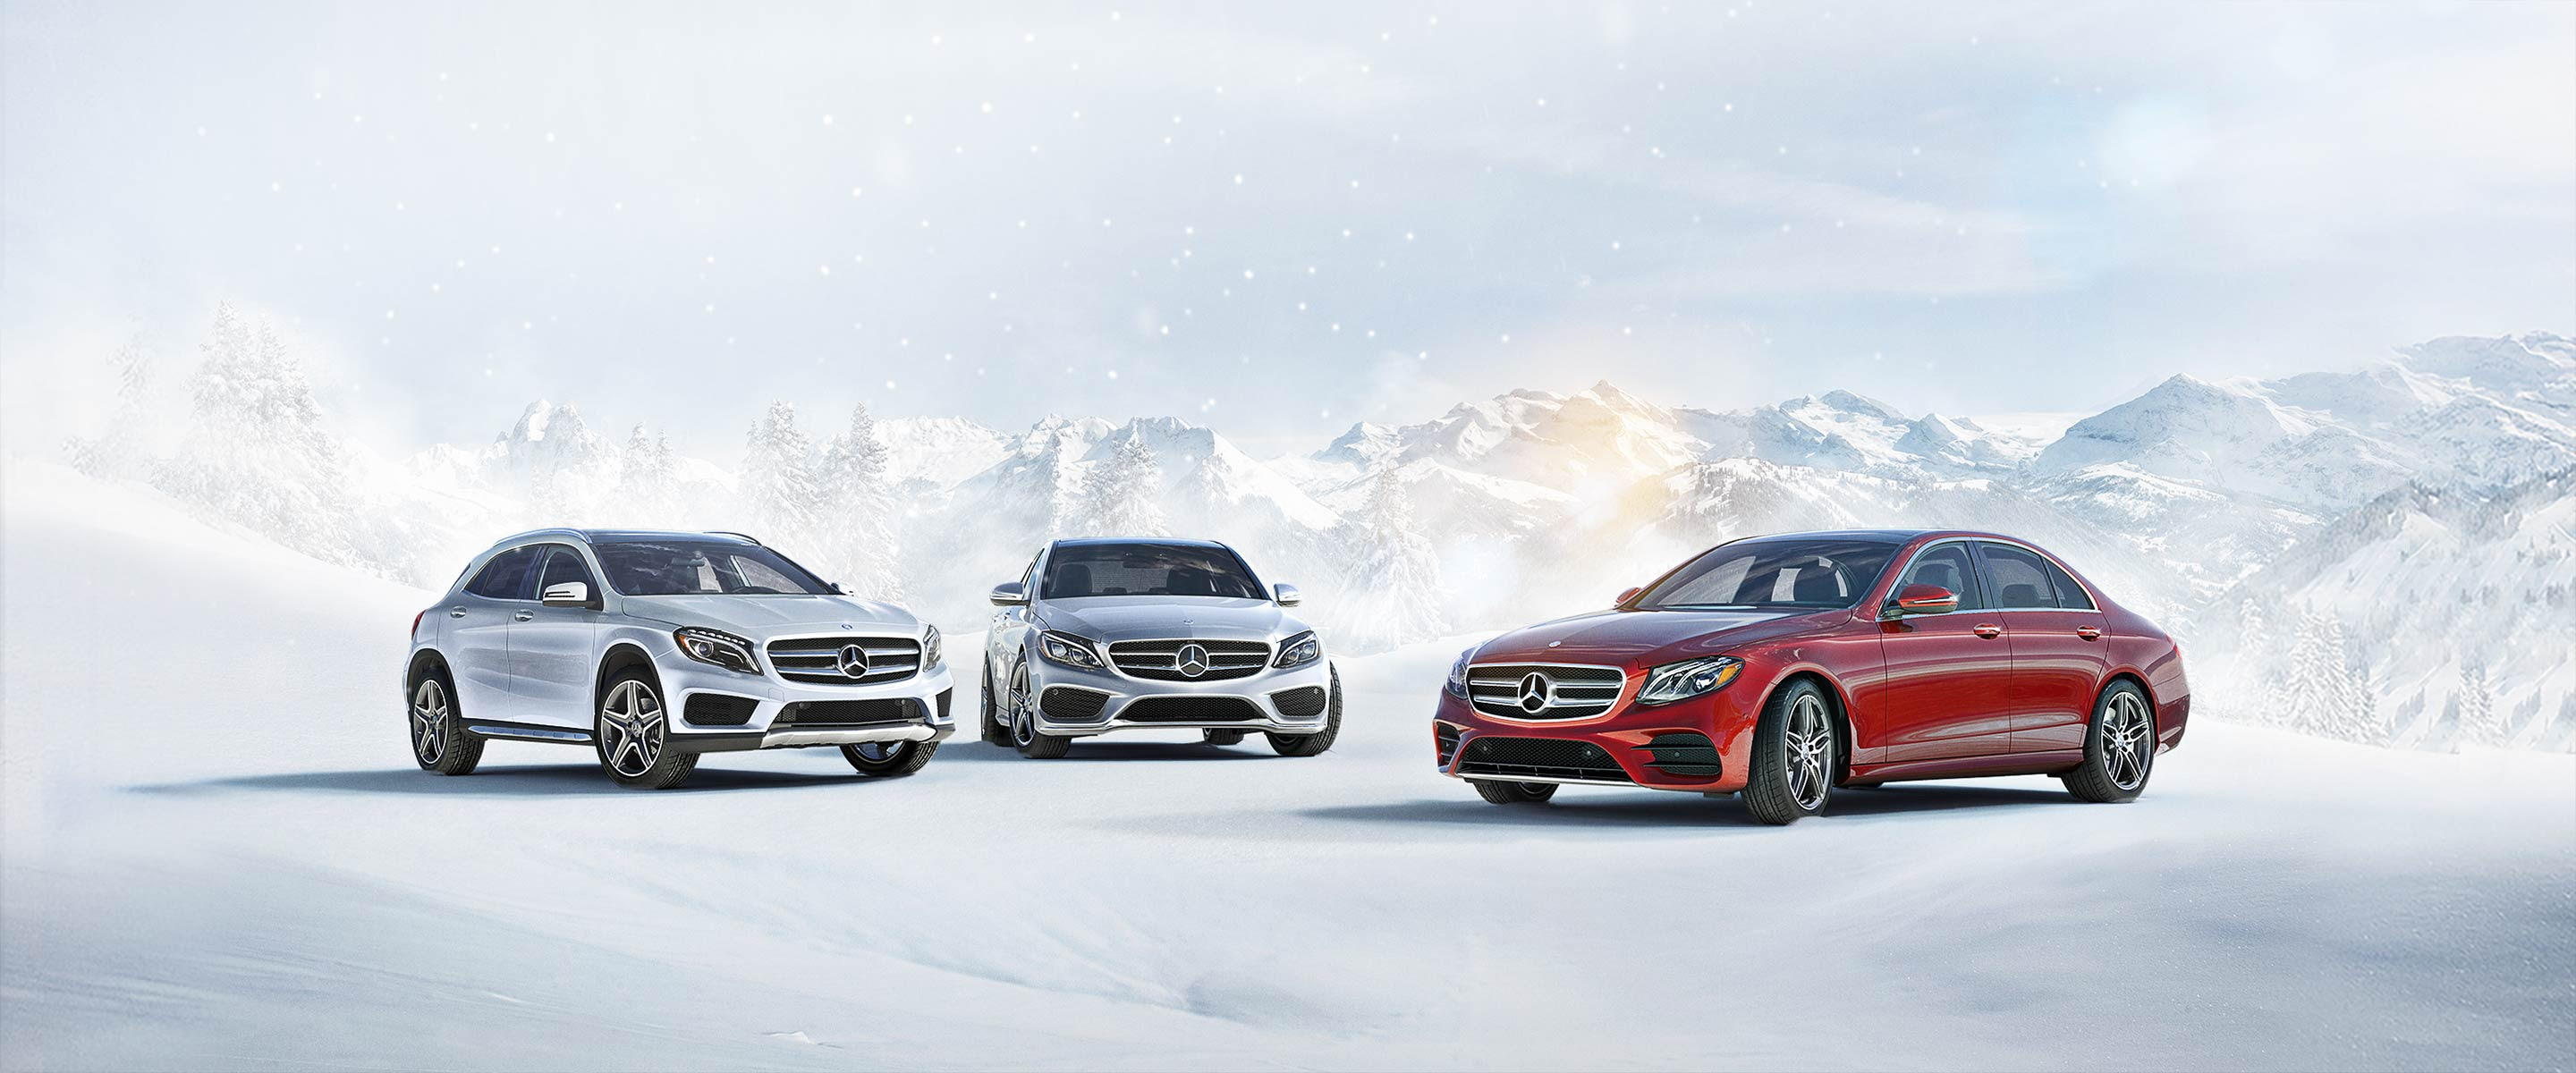 Mercedes-Benz of North Palm Beach | New Mercedes-Benz ...